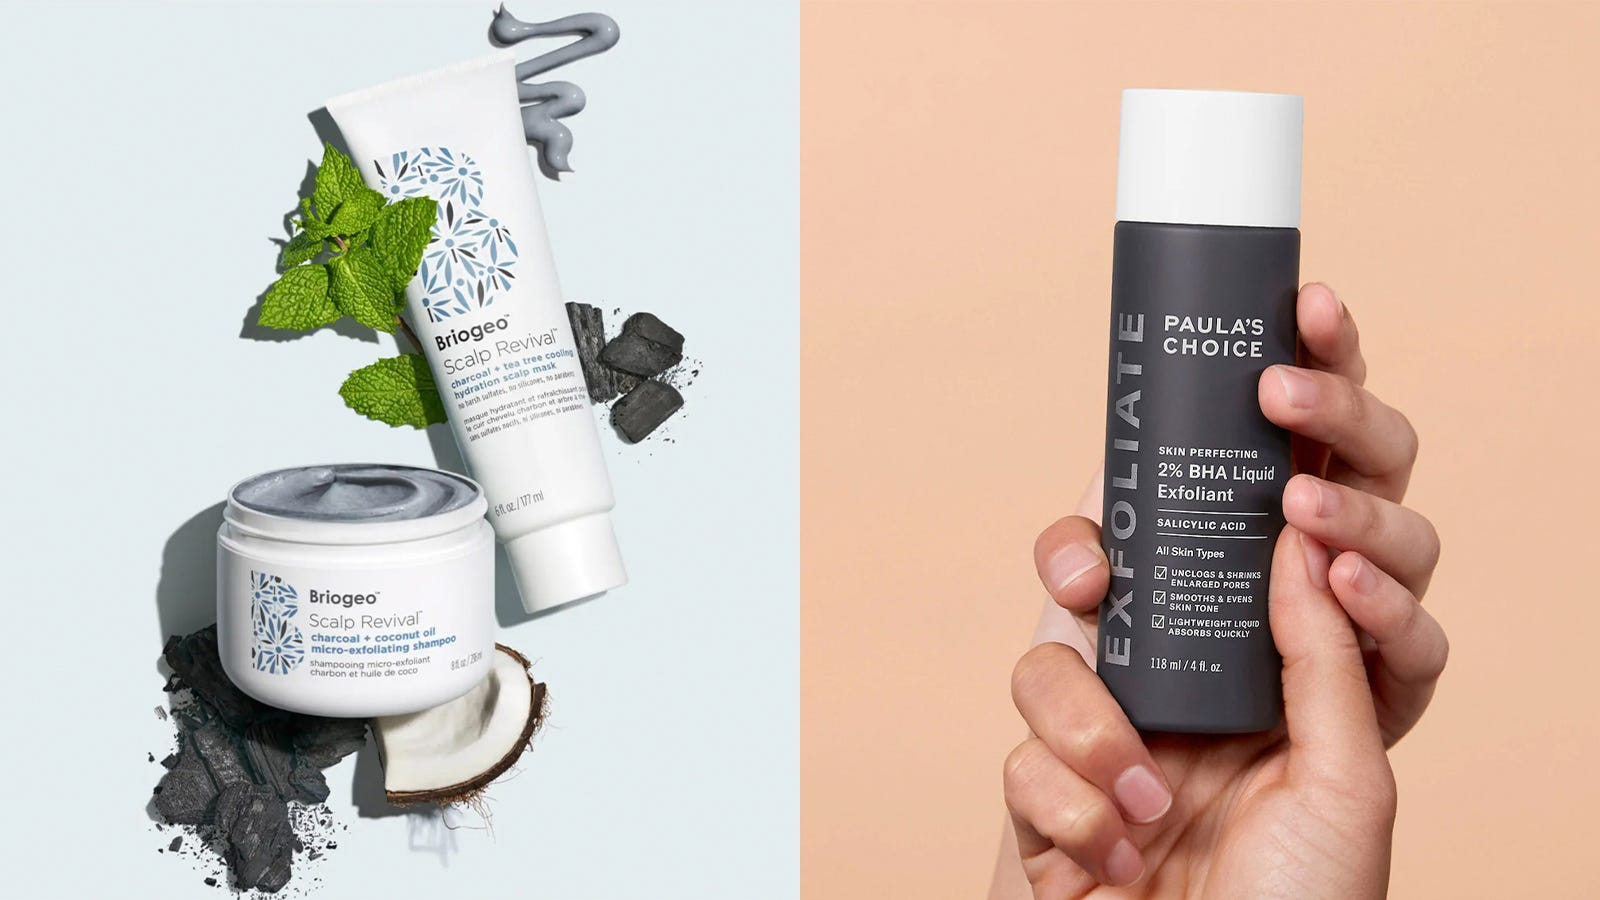 Get major markdowns on top-rated beauty products at the Dermstore Anniversary Sale